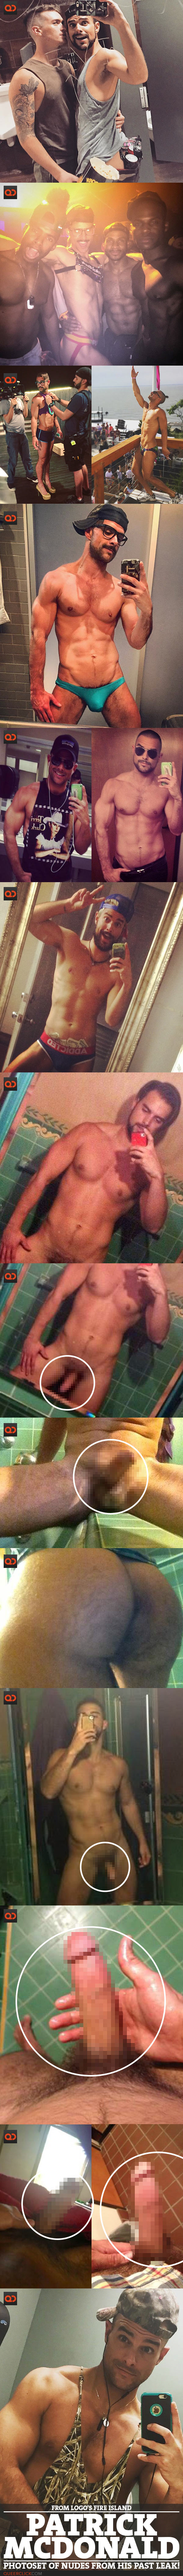 Patrick McDonald, From Logo's Fire Island, PhotoSet Of Nudes From His Past Leak!